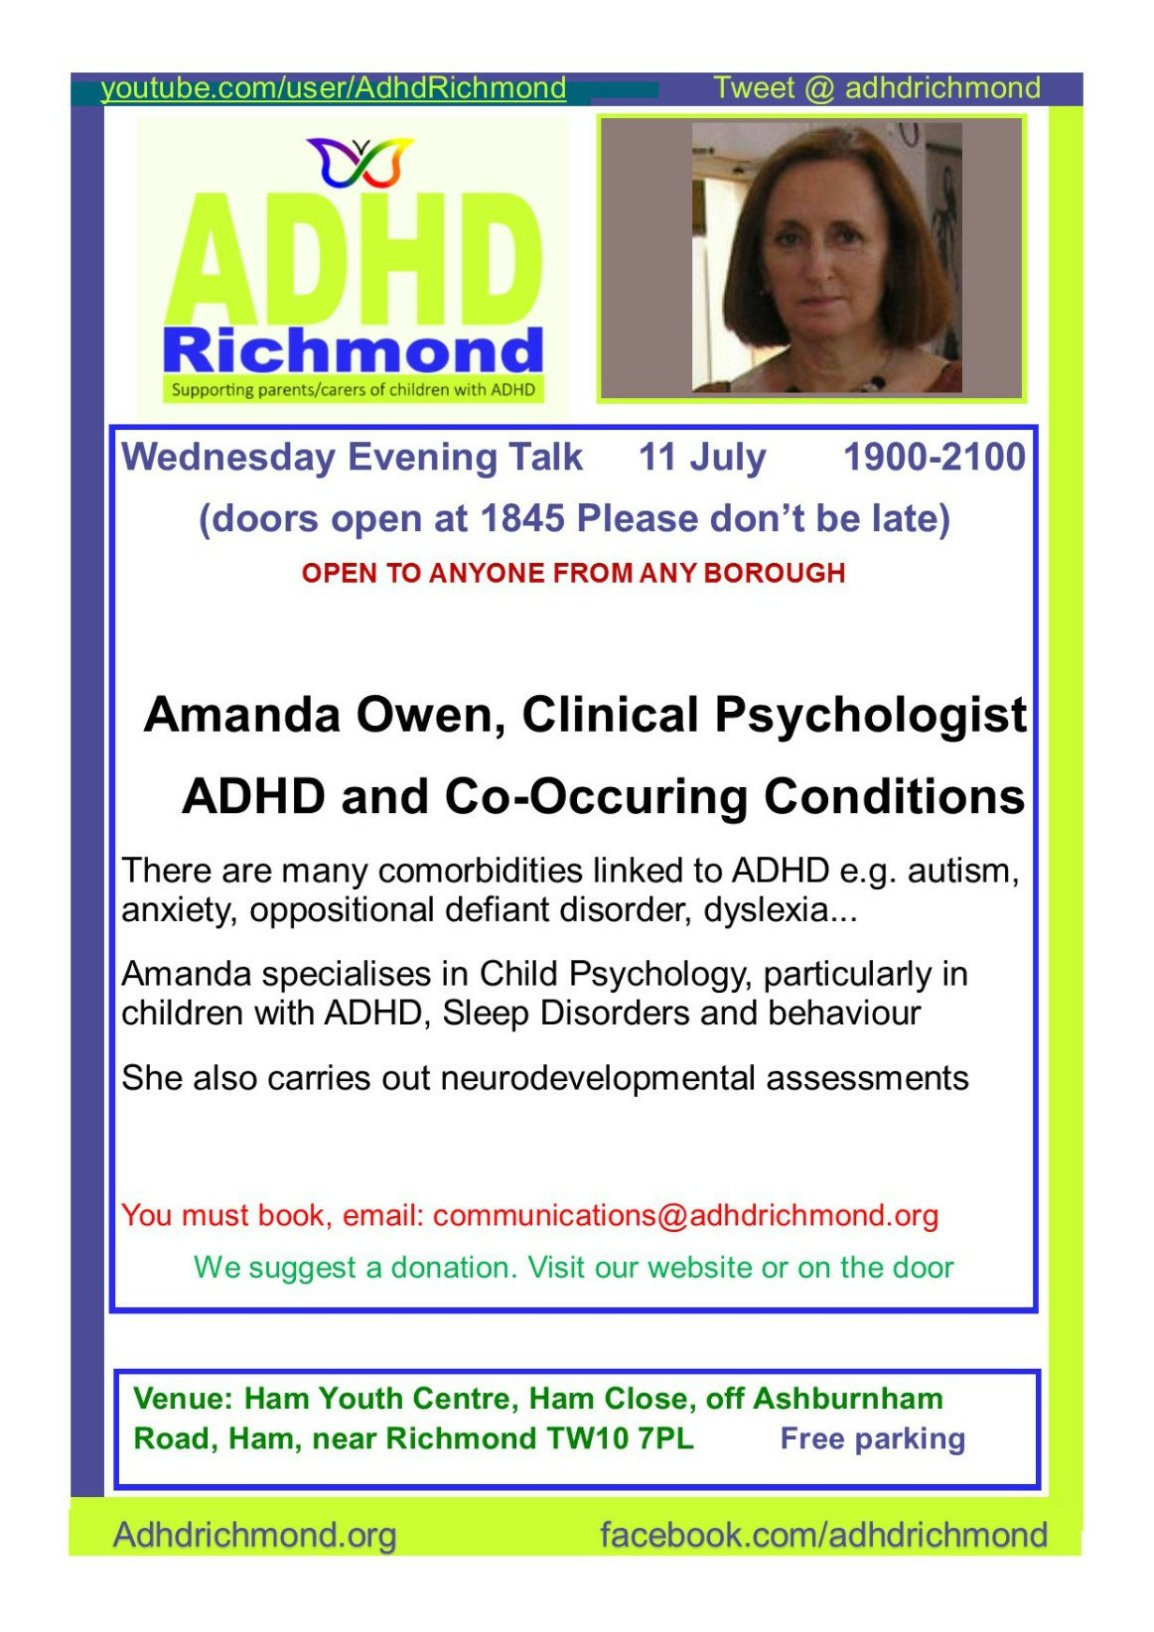 11 July free Talk on #ADHD &Co-Occuring Conditions. Open to any #parent #carer or #practitioner Listed @EventBrite Book:  communications@adhdrichmond.org                          https://www.eventbrite.co.uk/e/adhd-richmond-free-evening-talk-adhd-co-occuring-conditions-tickets-47885985271